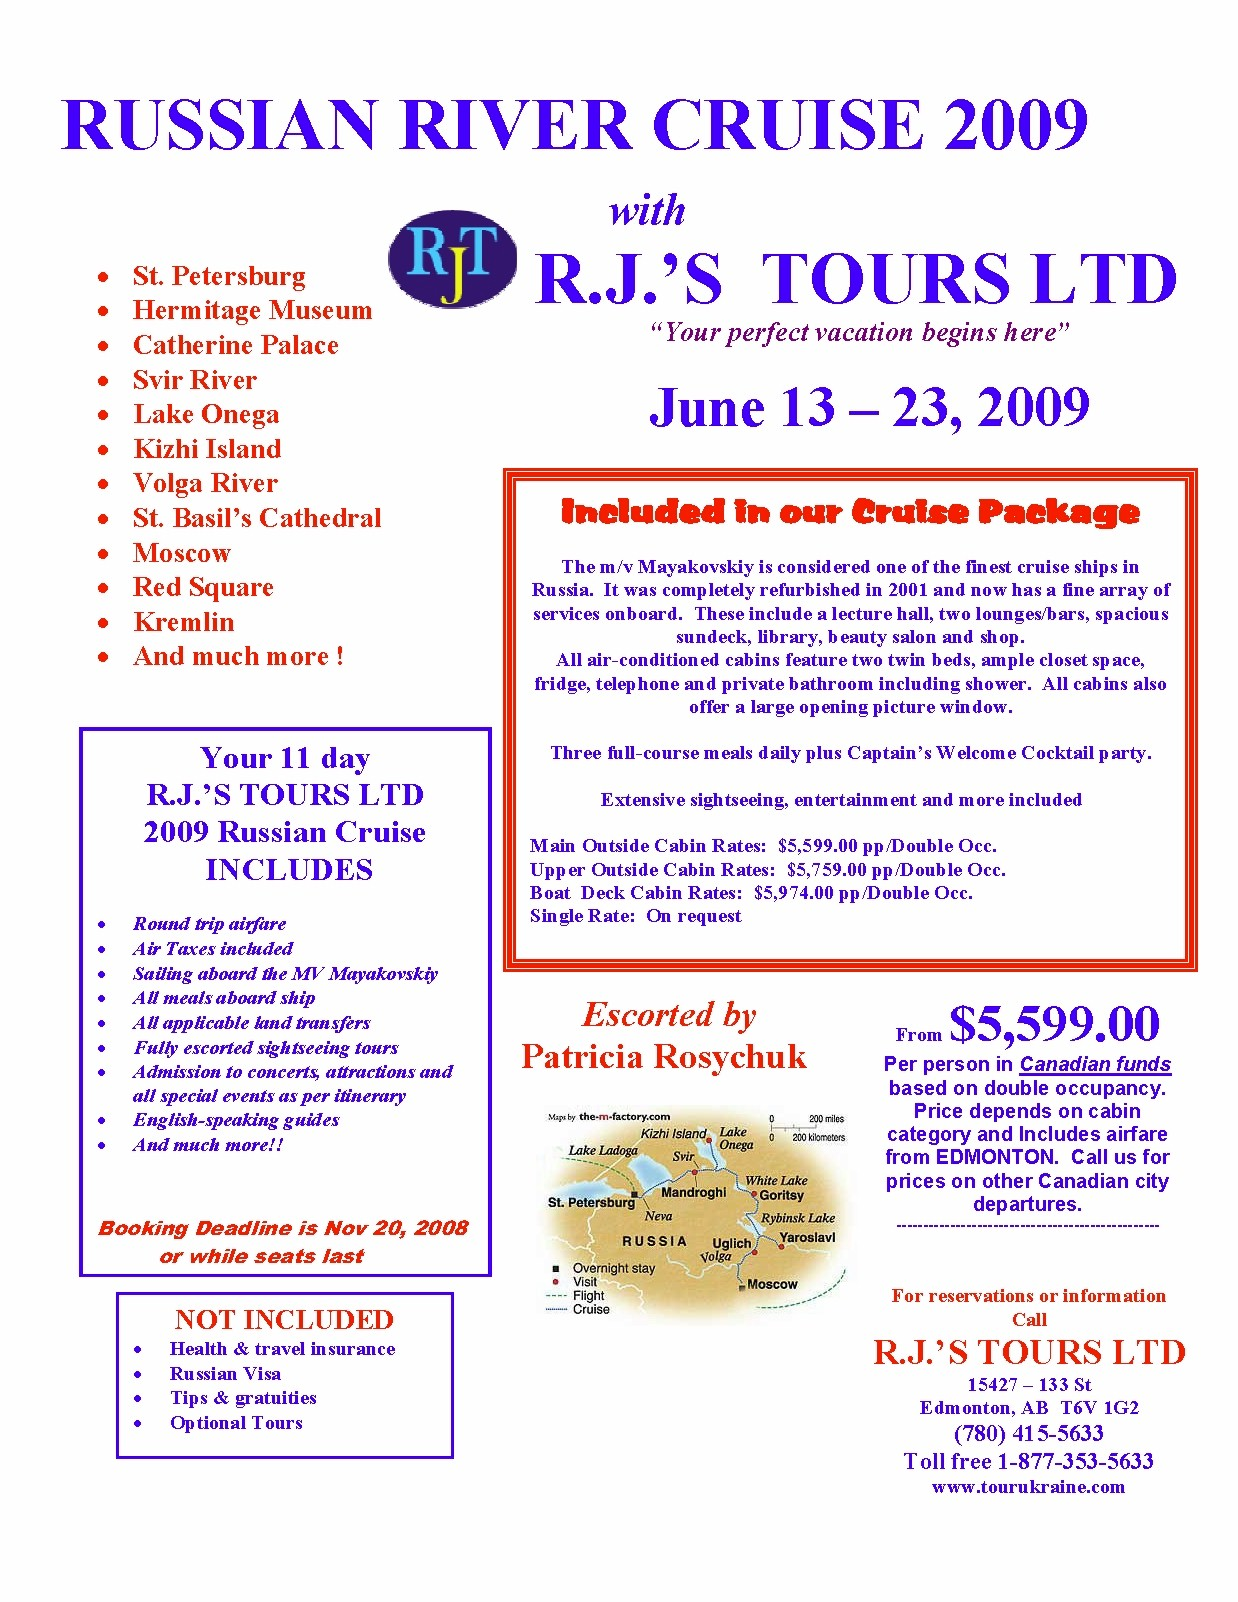 All-inclusive escorted group tour